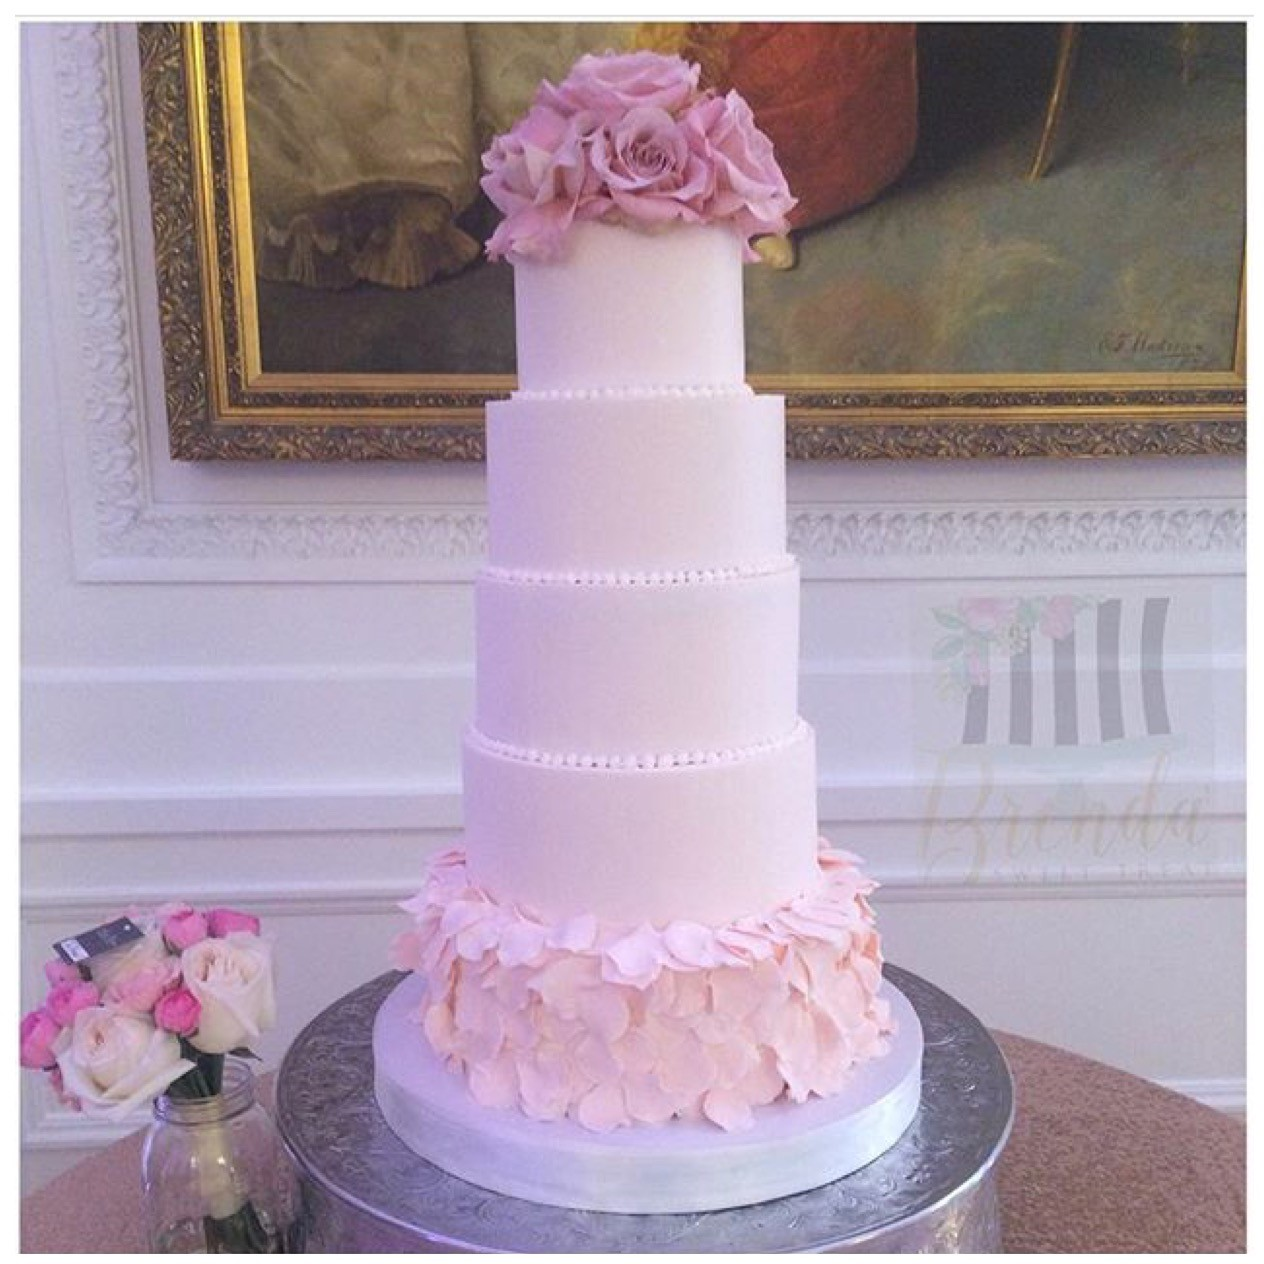 Chic wedding cake